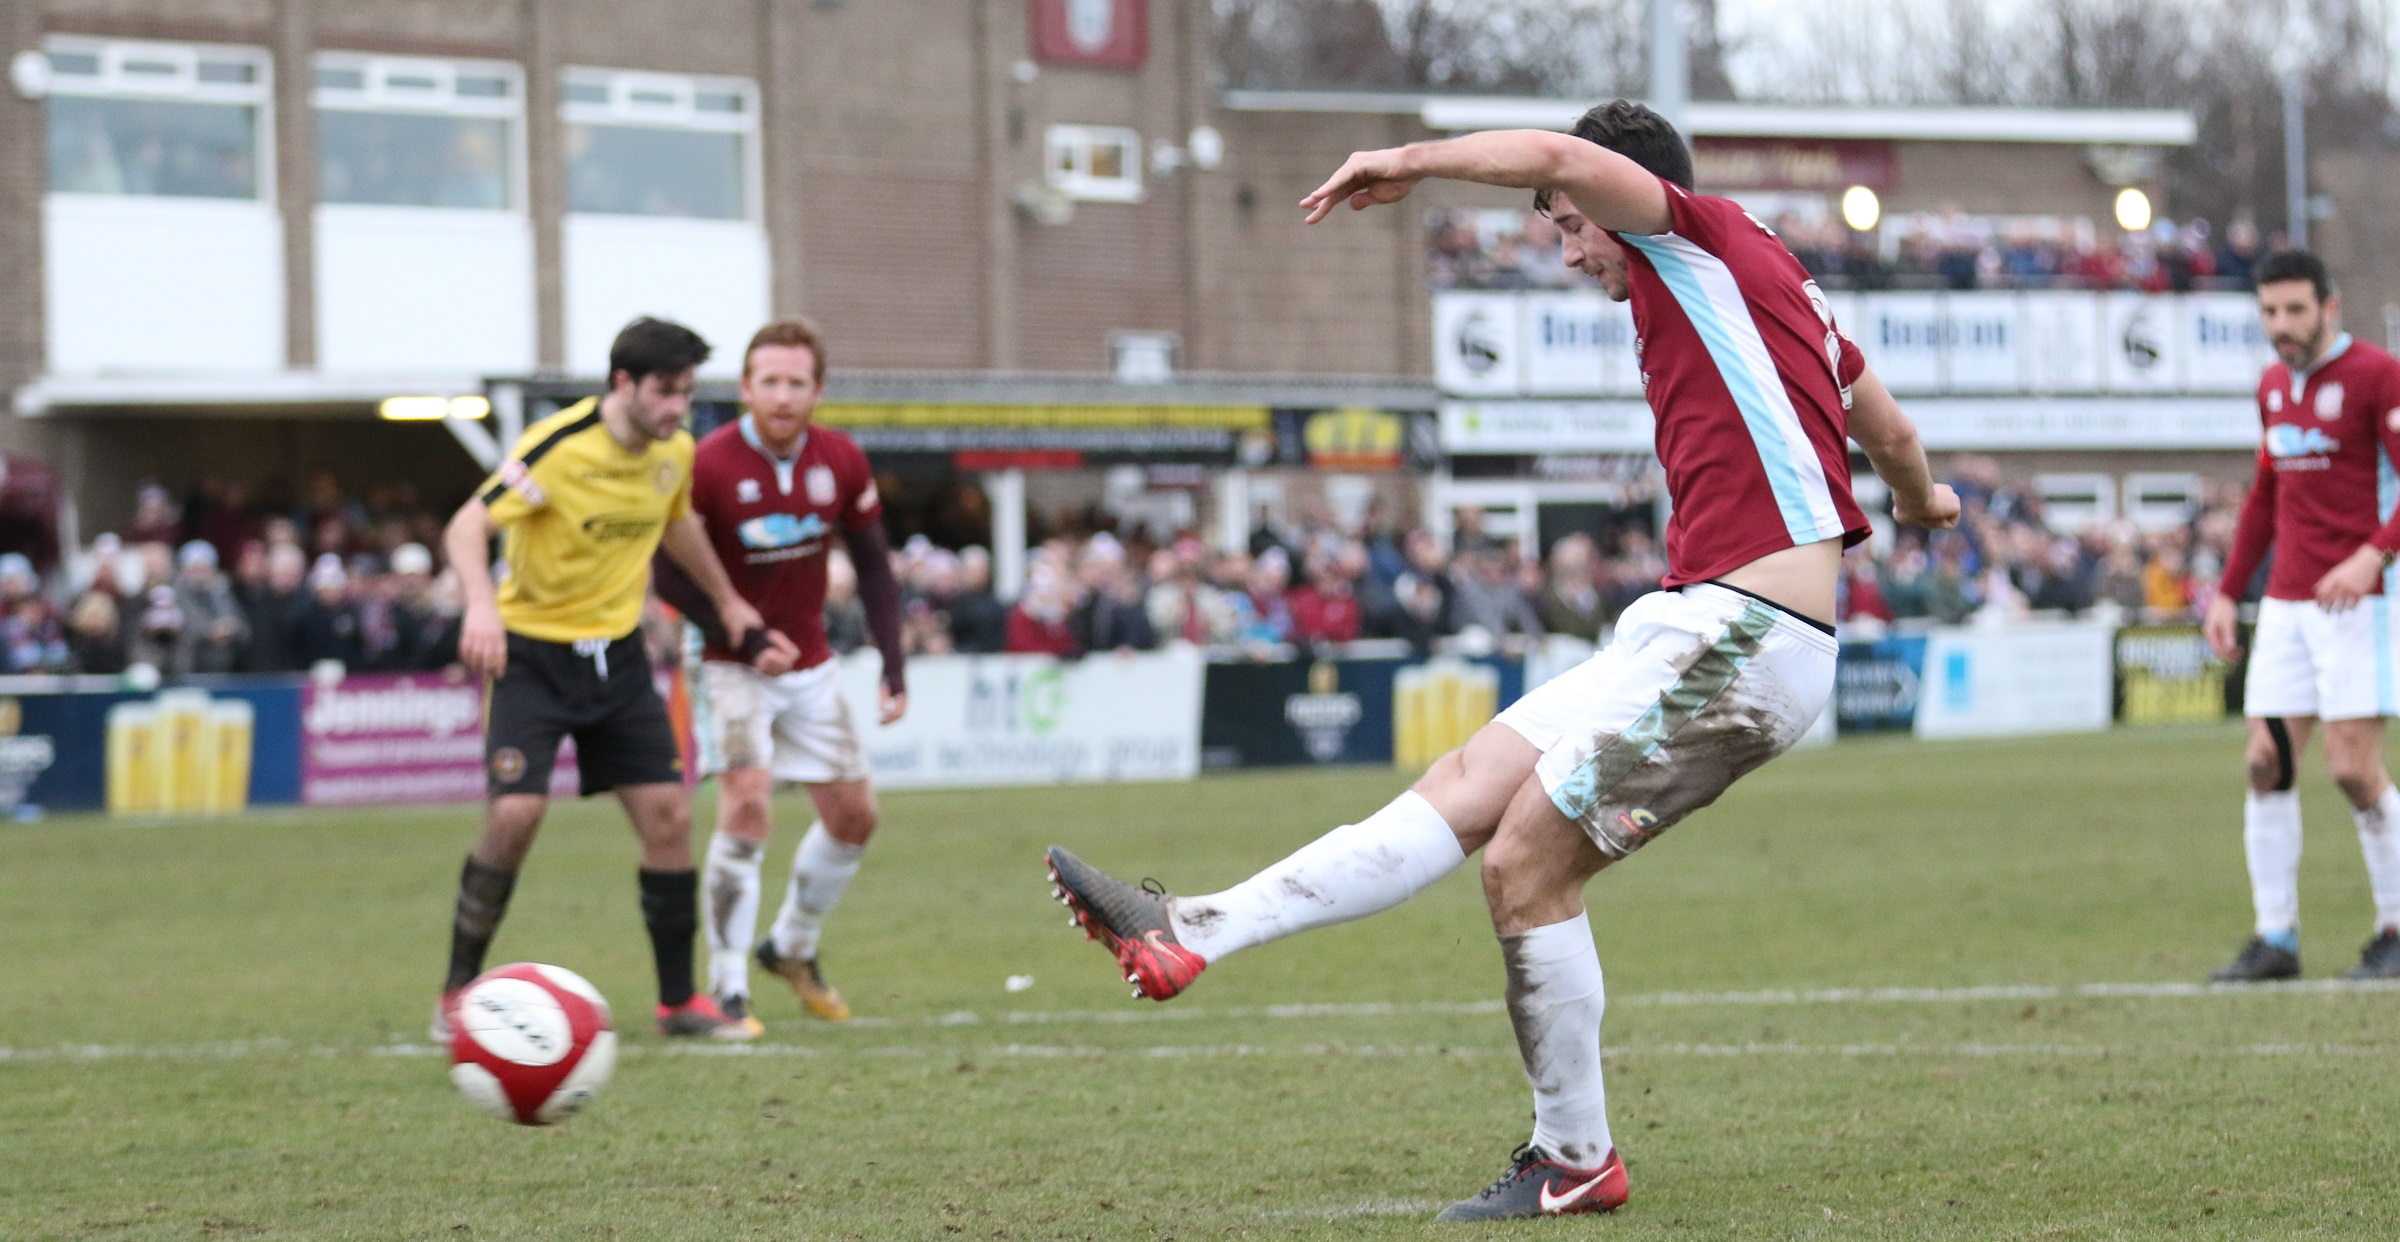 South Shields 3-1 Skelmersdale United: Briggs hat-trick seals win